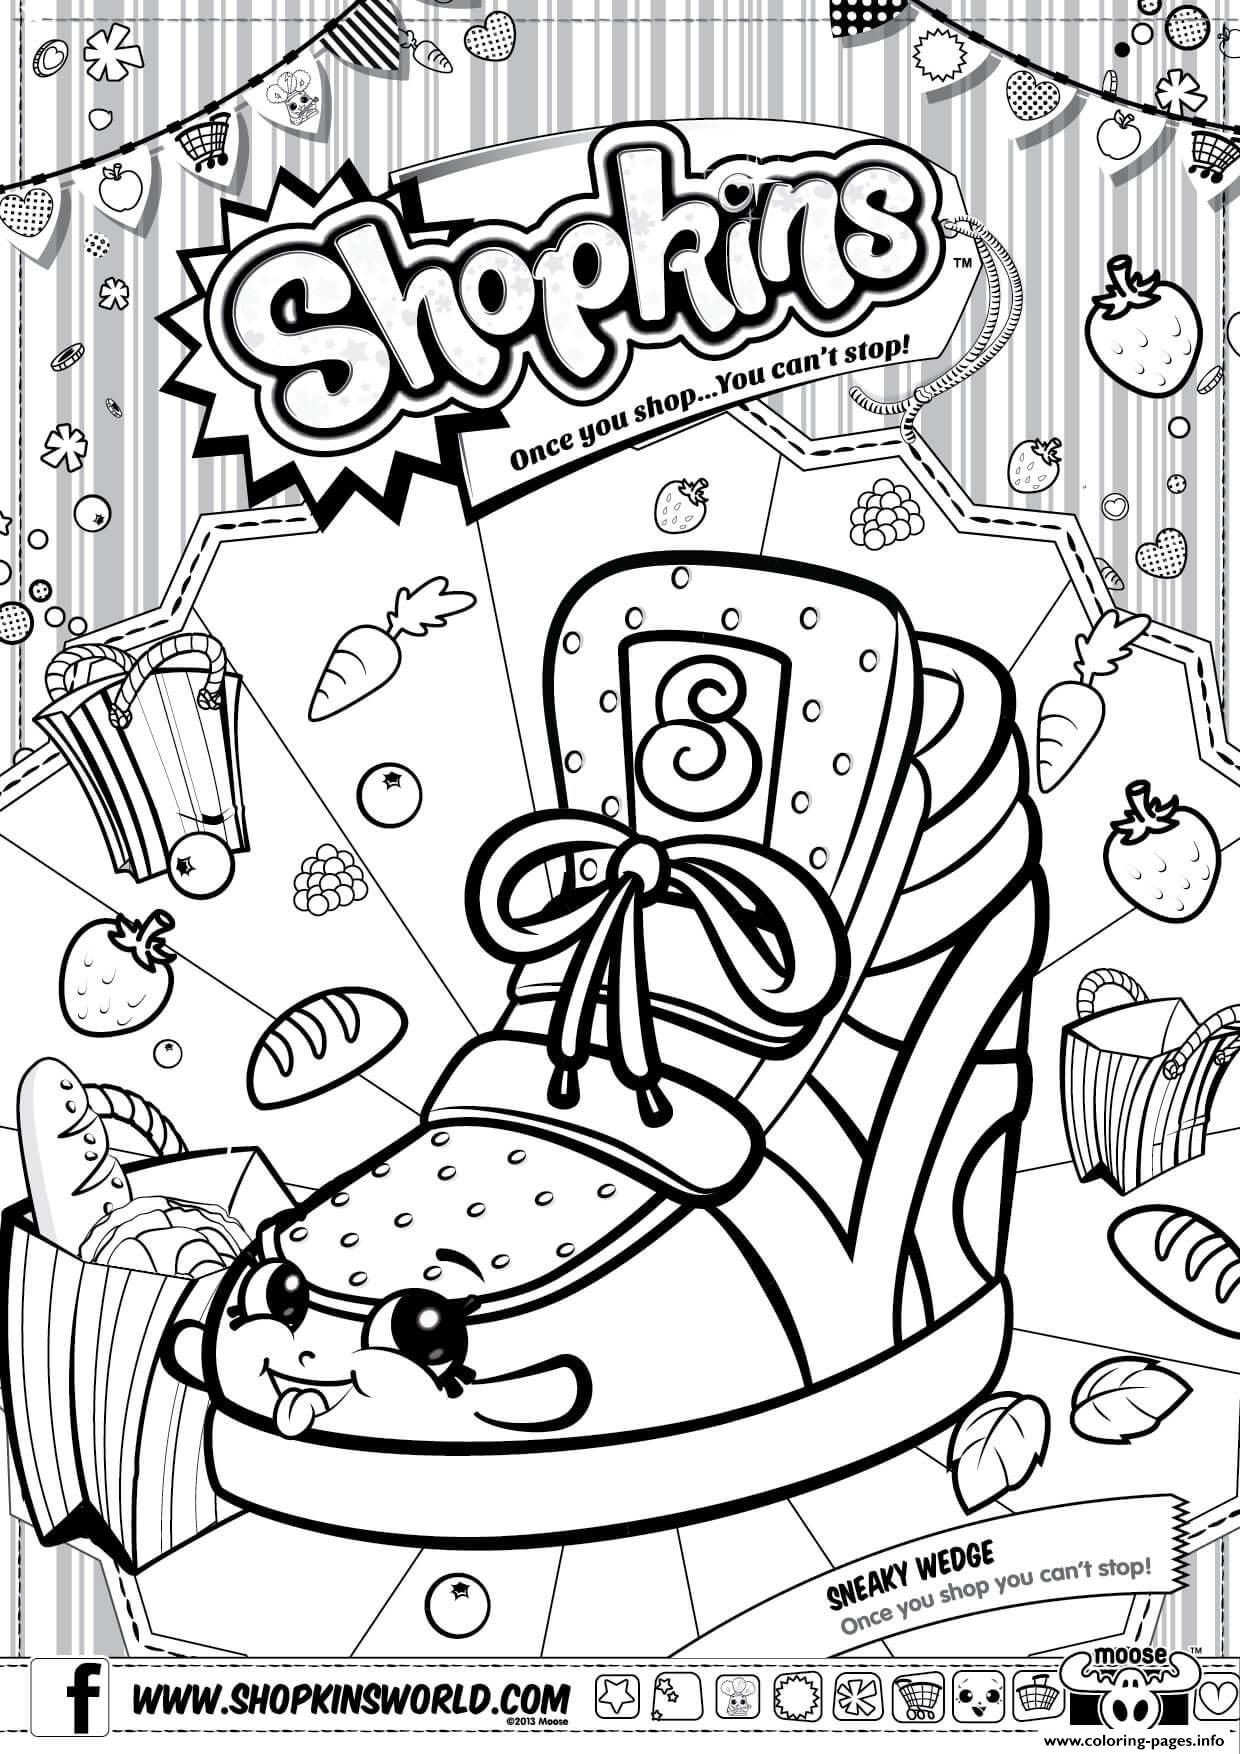 1240x1754 Shopkins Characters Coloring Pages Print Sneaky Wedge Landscape